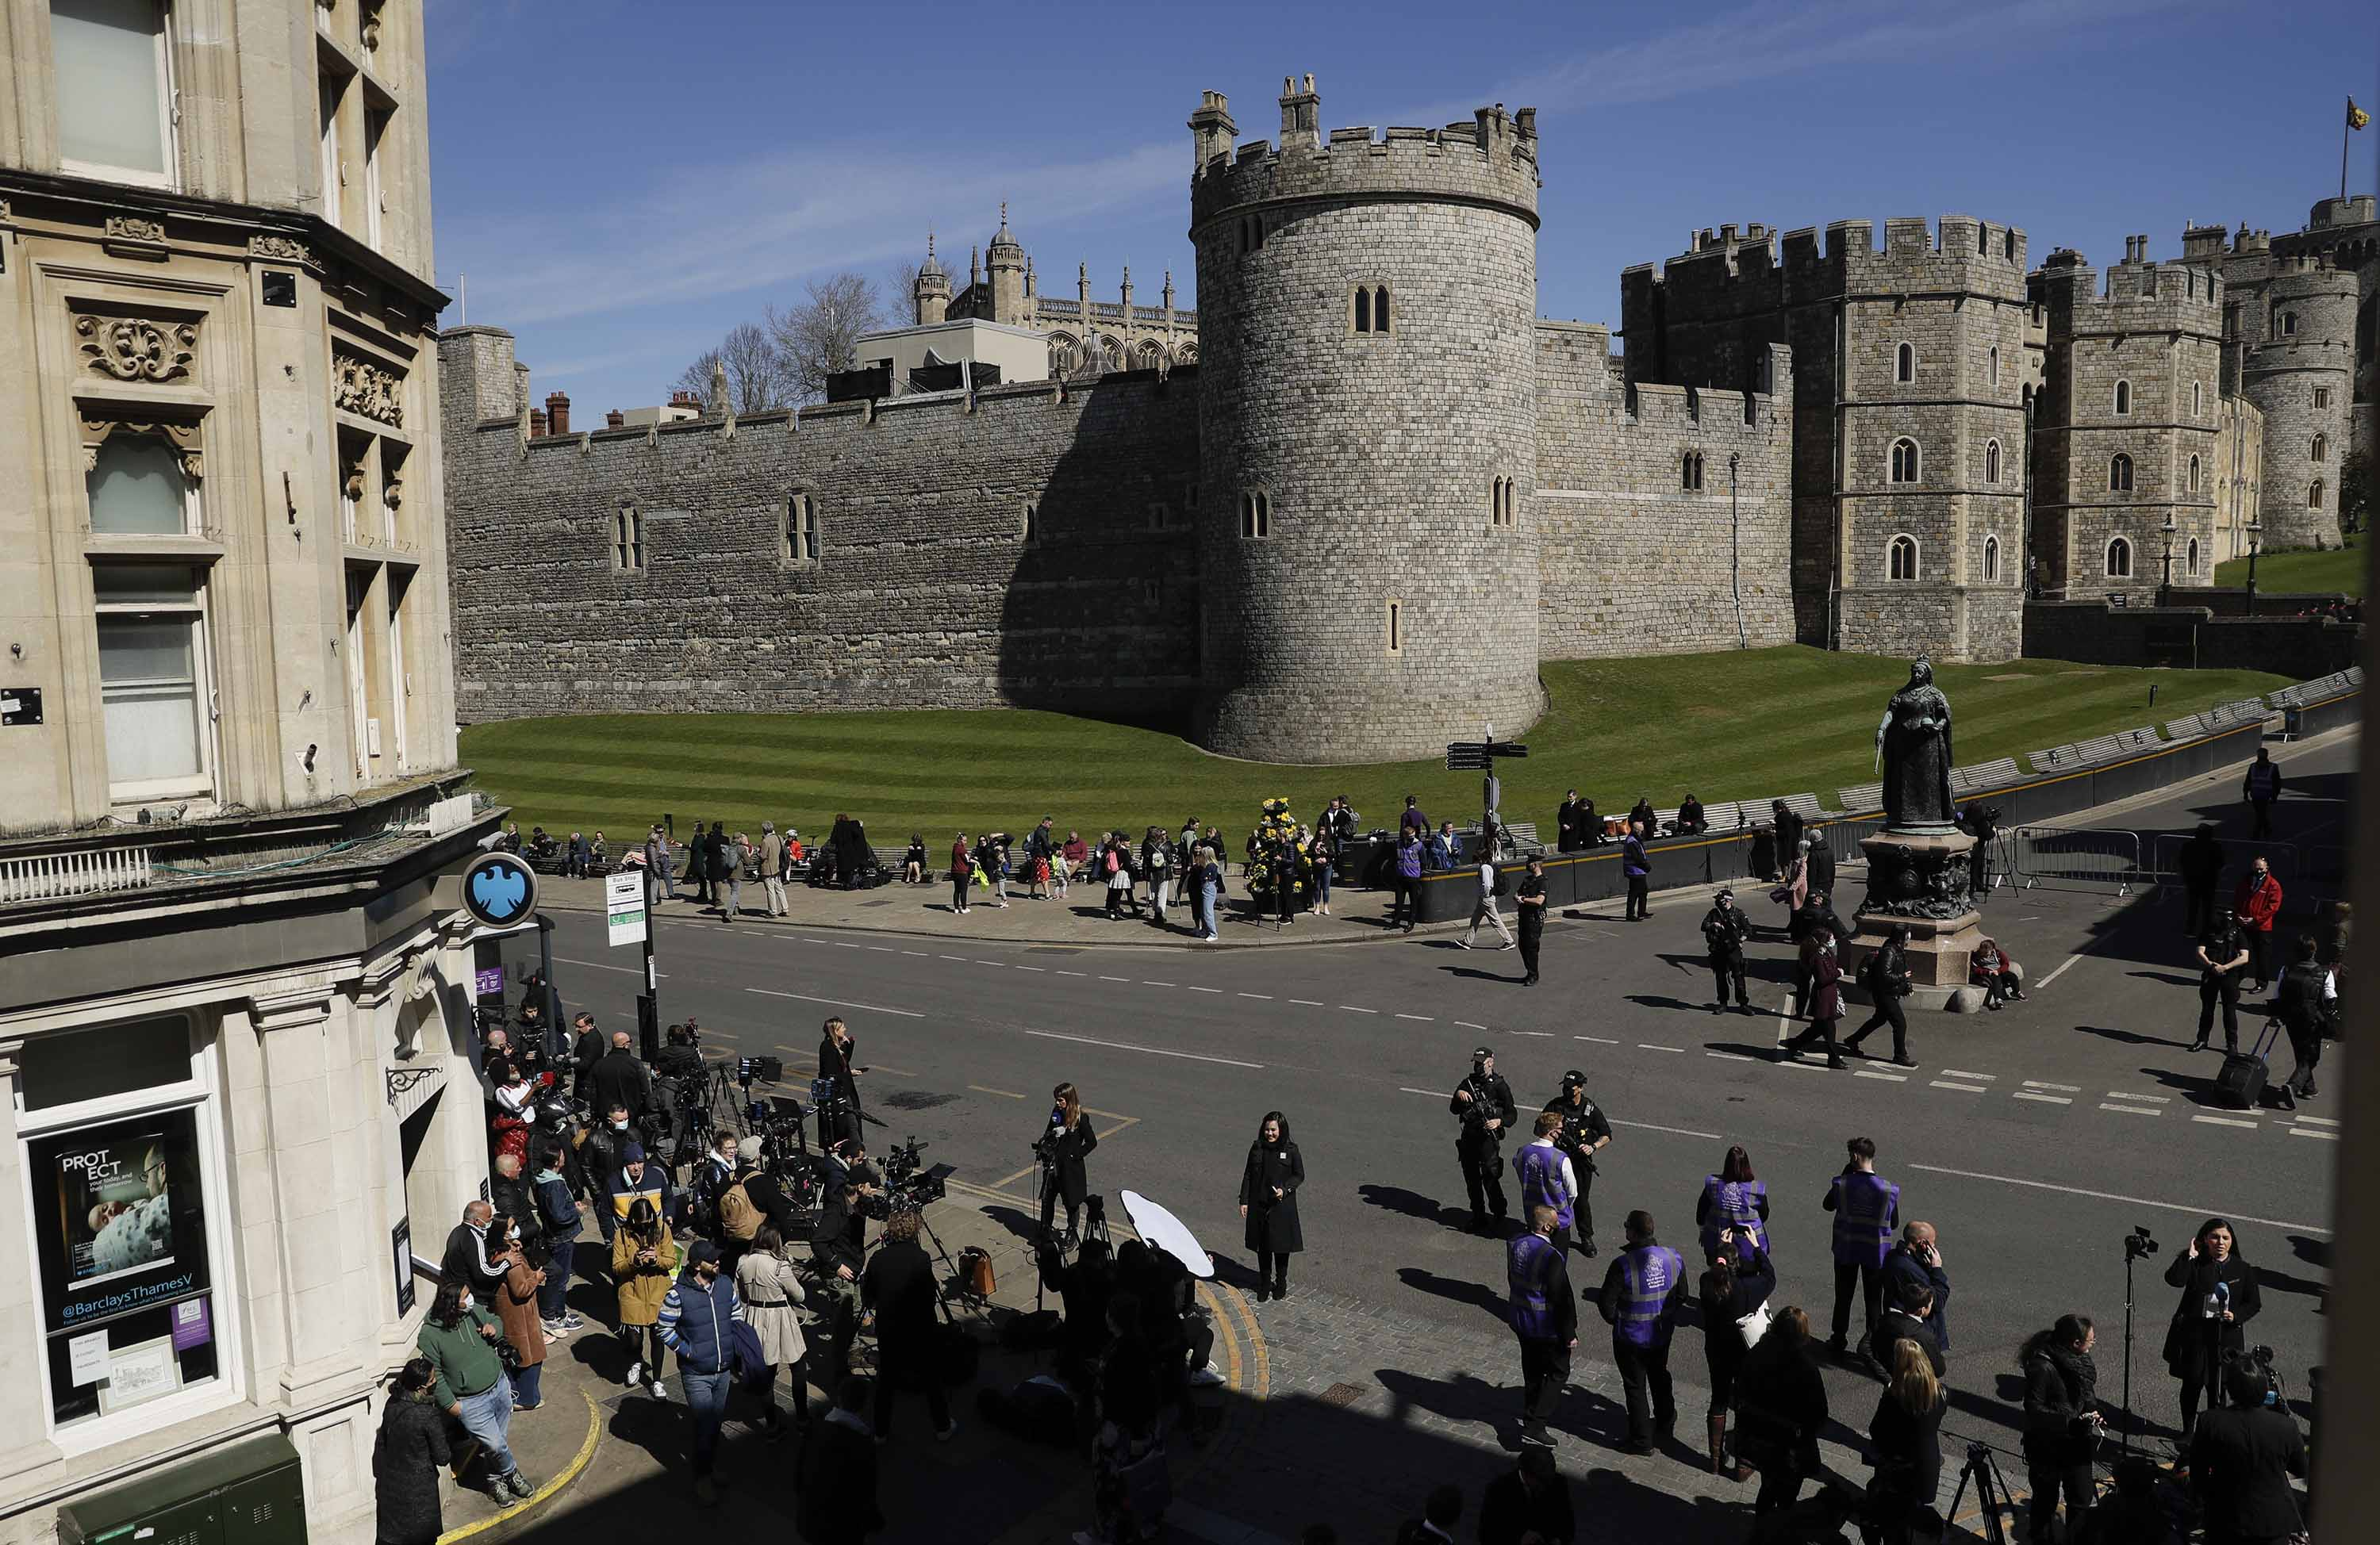 People gather ahead of the funeral of Britain's Prince Philip in Windsor, England, on Saturday April 17.